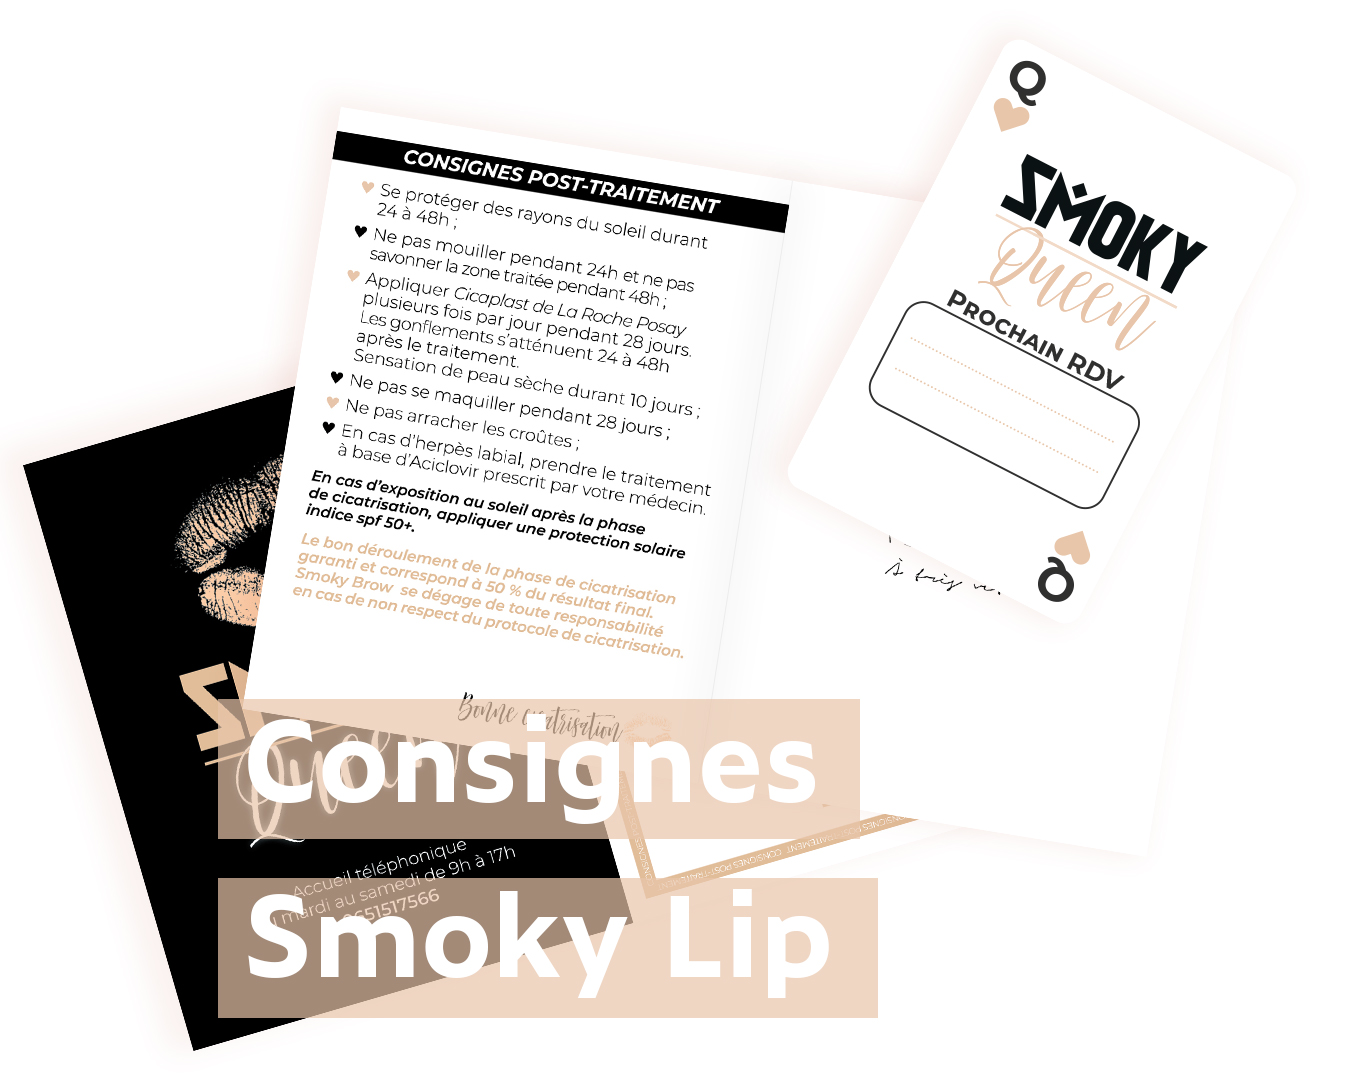 Consignes-Smoky-Lip